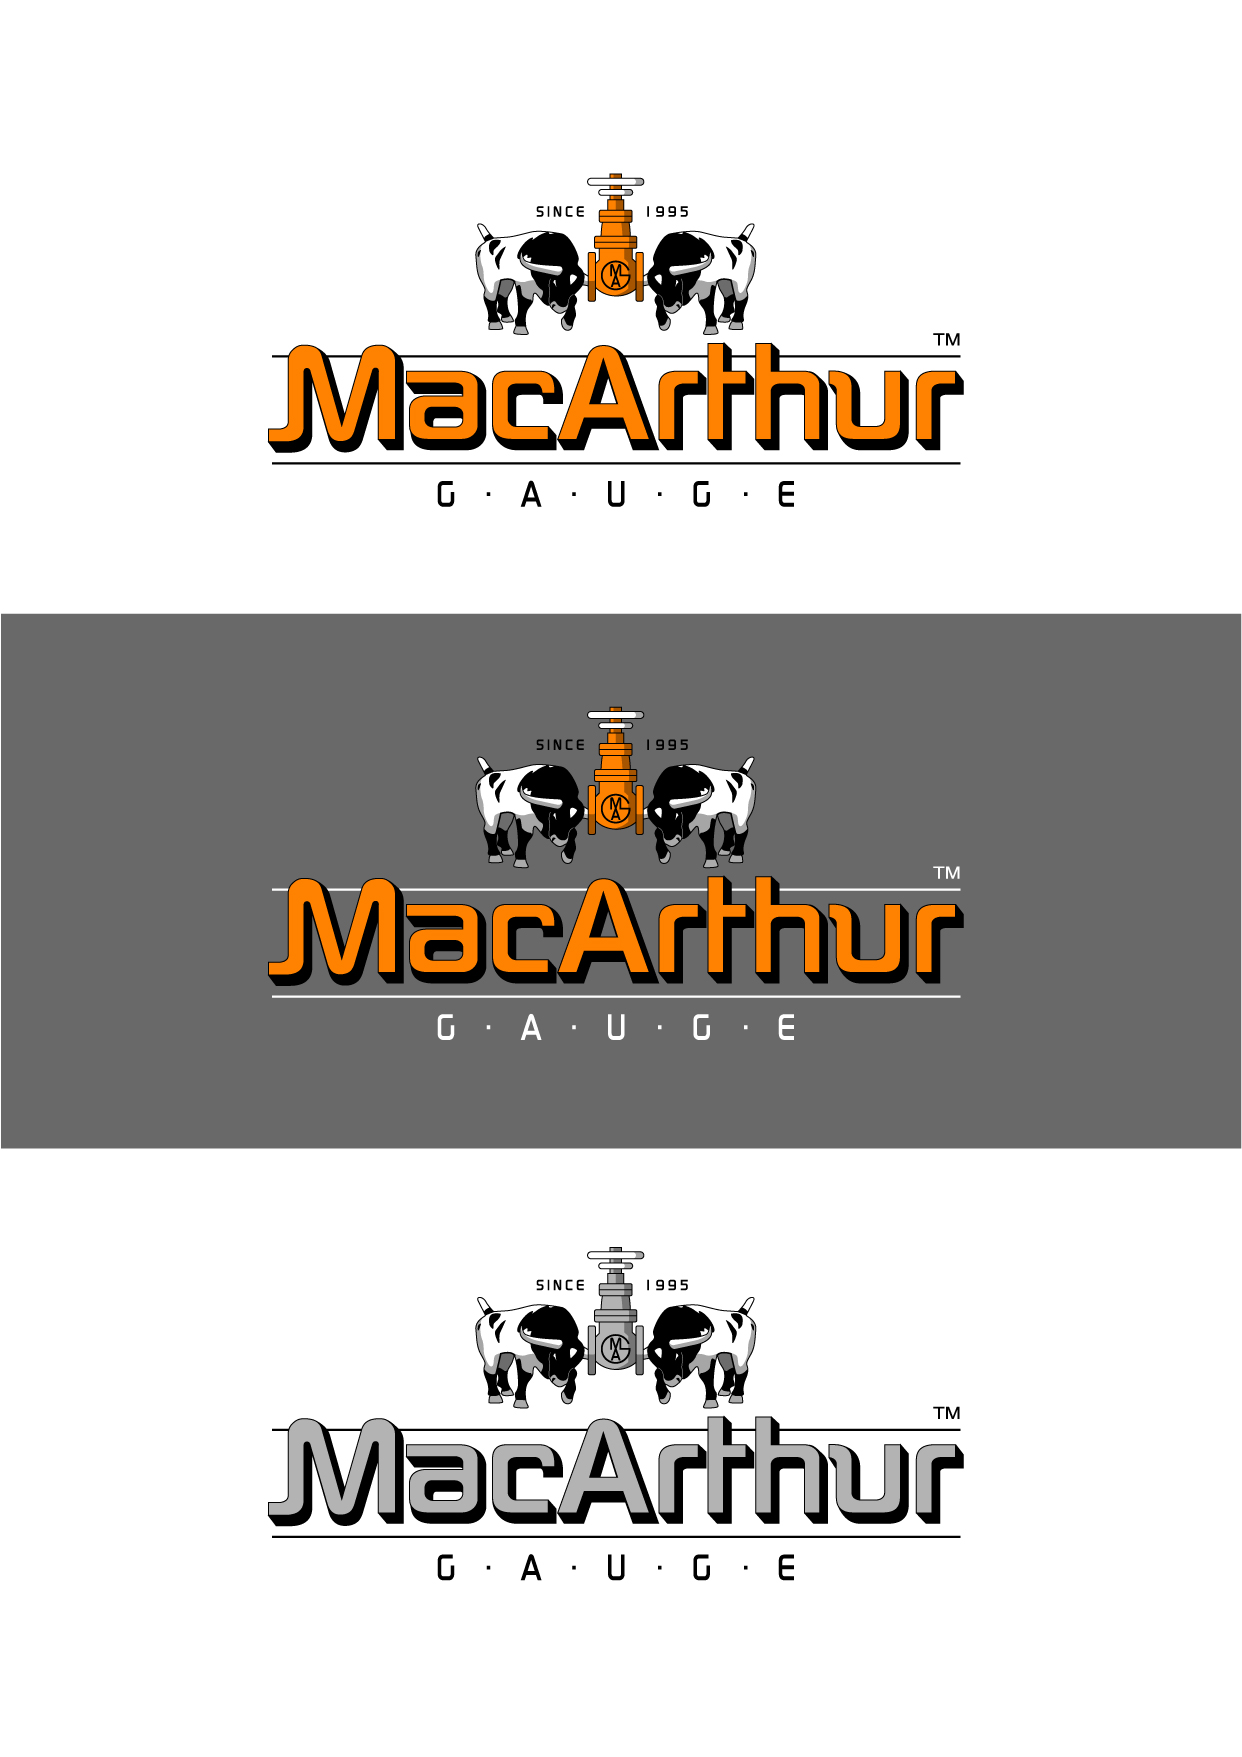 Logo Design by Wilfredo Mendoza - Entry No. 179 in the Logo Design Contest Fun Logo Design for MacArthur Gauge.